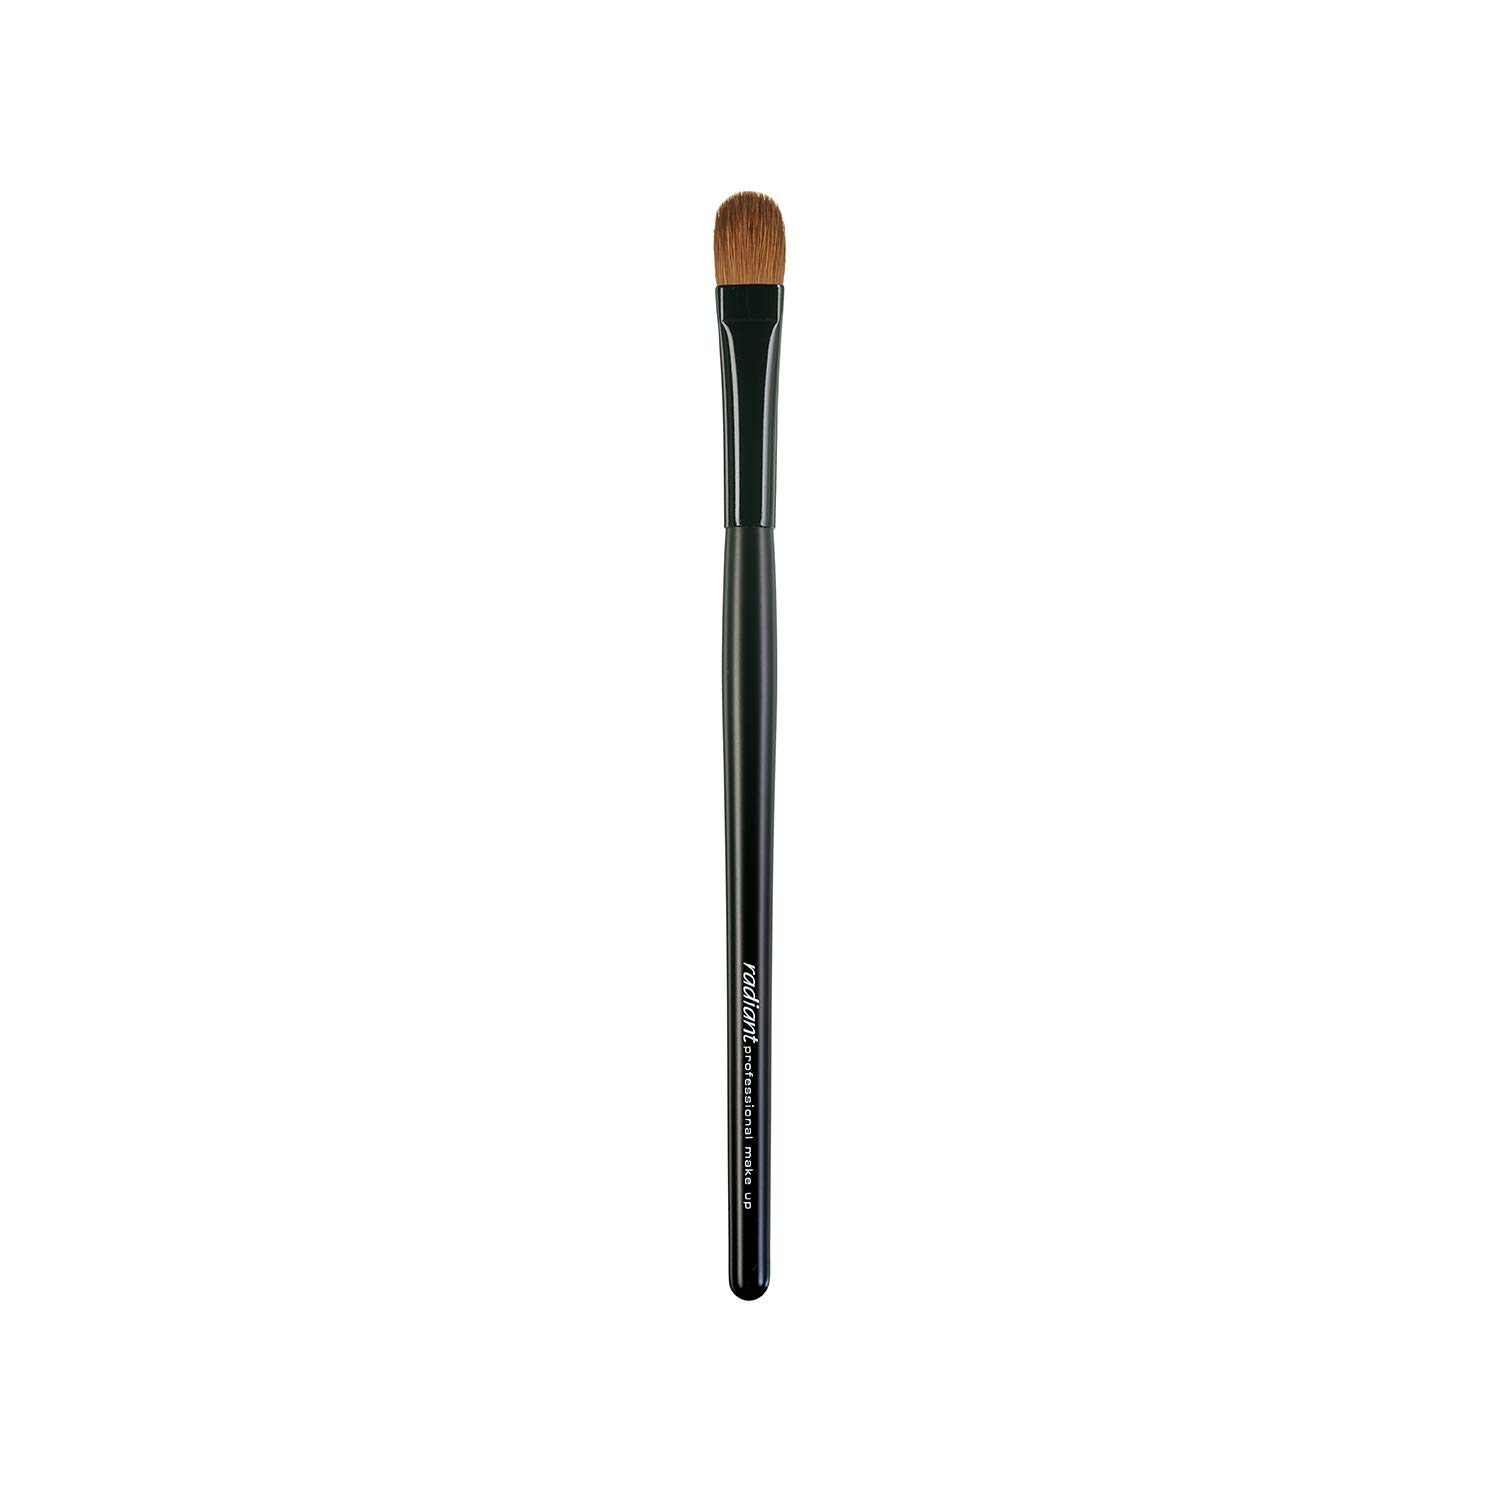 Radiant Professional Small Eye Shadow Blender Brush– Tapered Eyeshadow Makeup Brush Ideal For Blending Techniques, Sculpting & Shading– With Slightly Rounded Tip For Precision– Natural, Soft Bristles